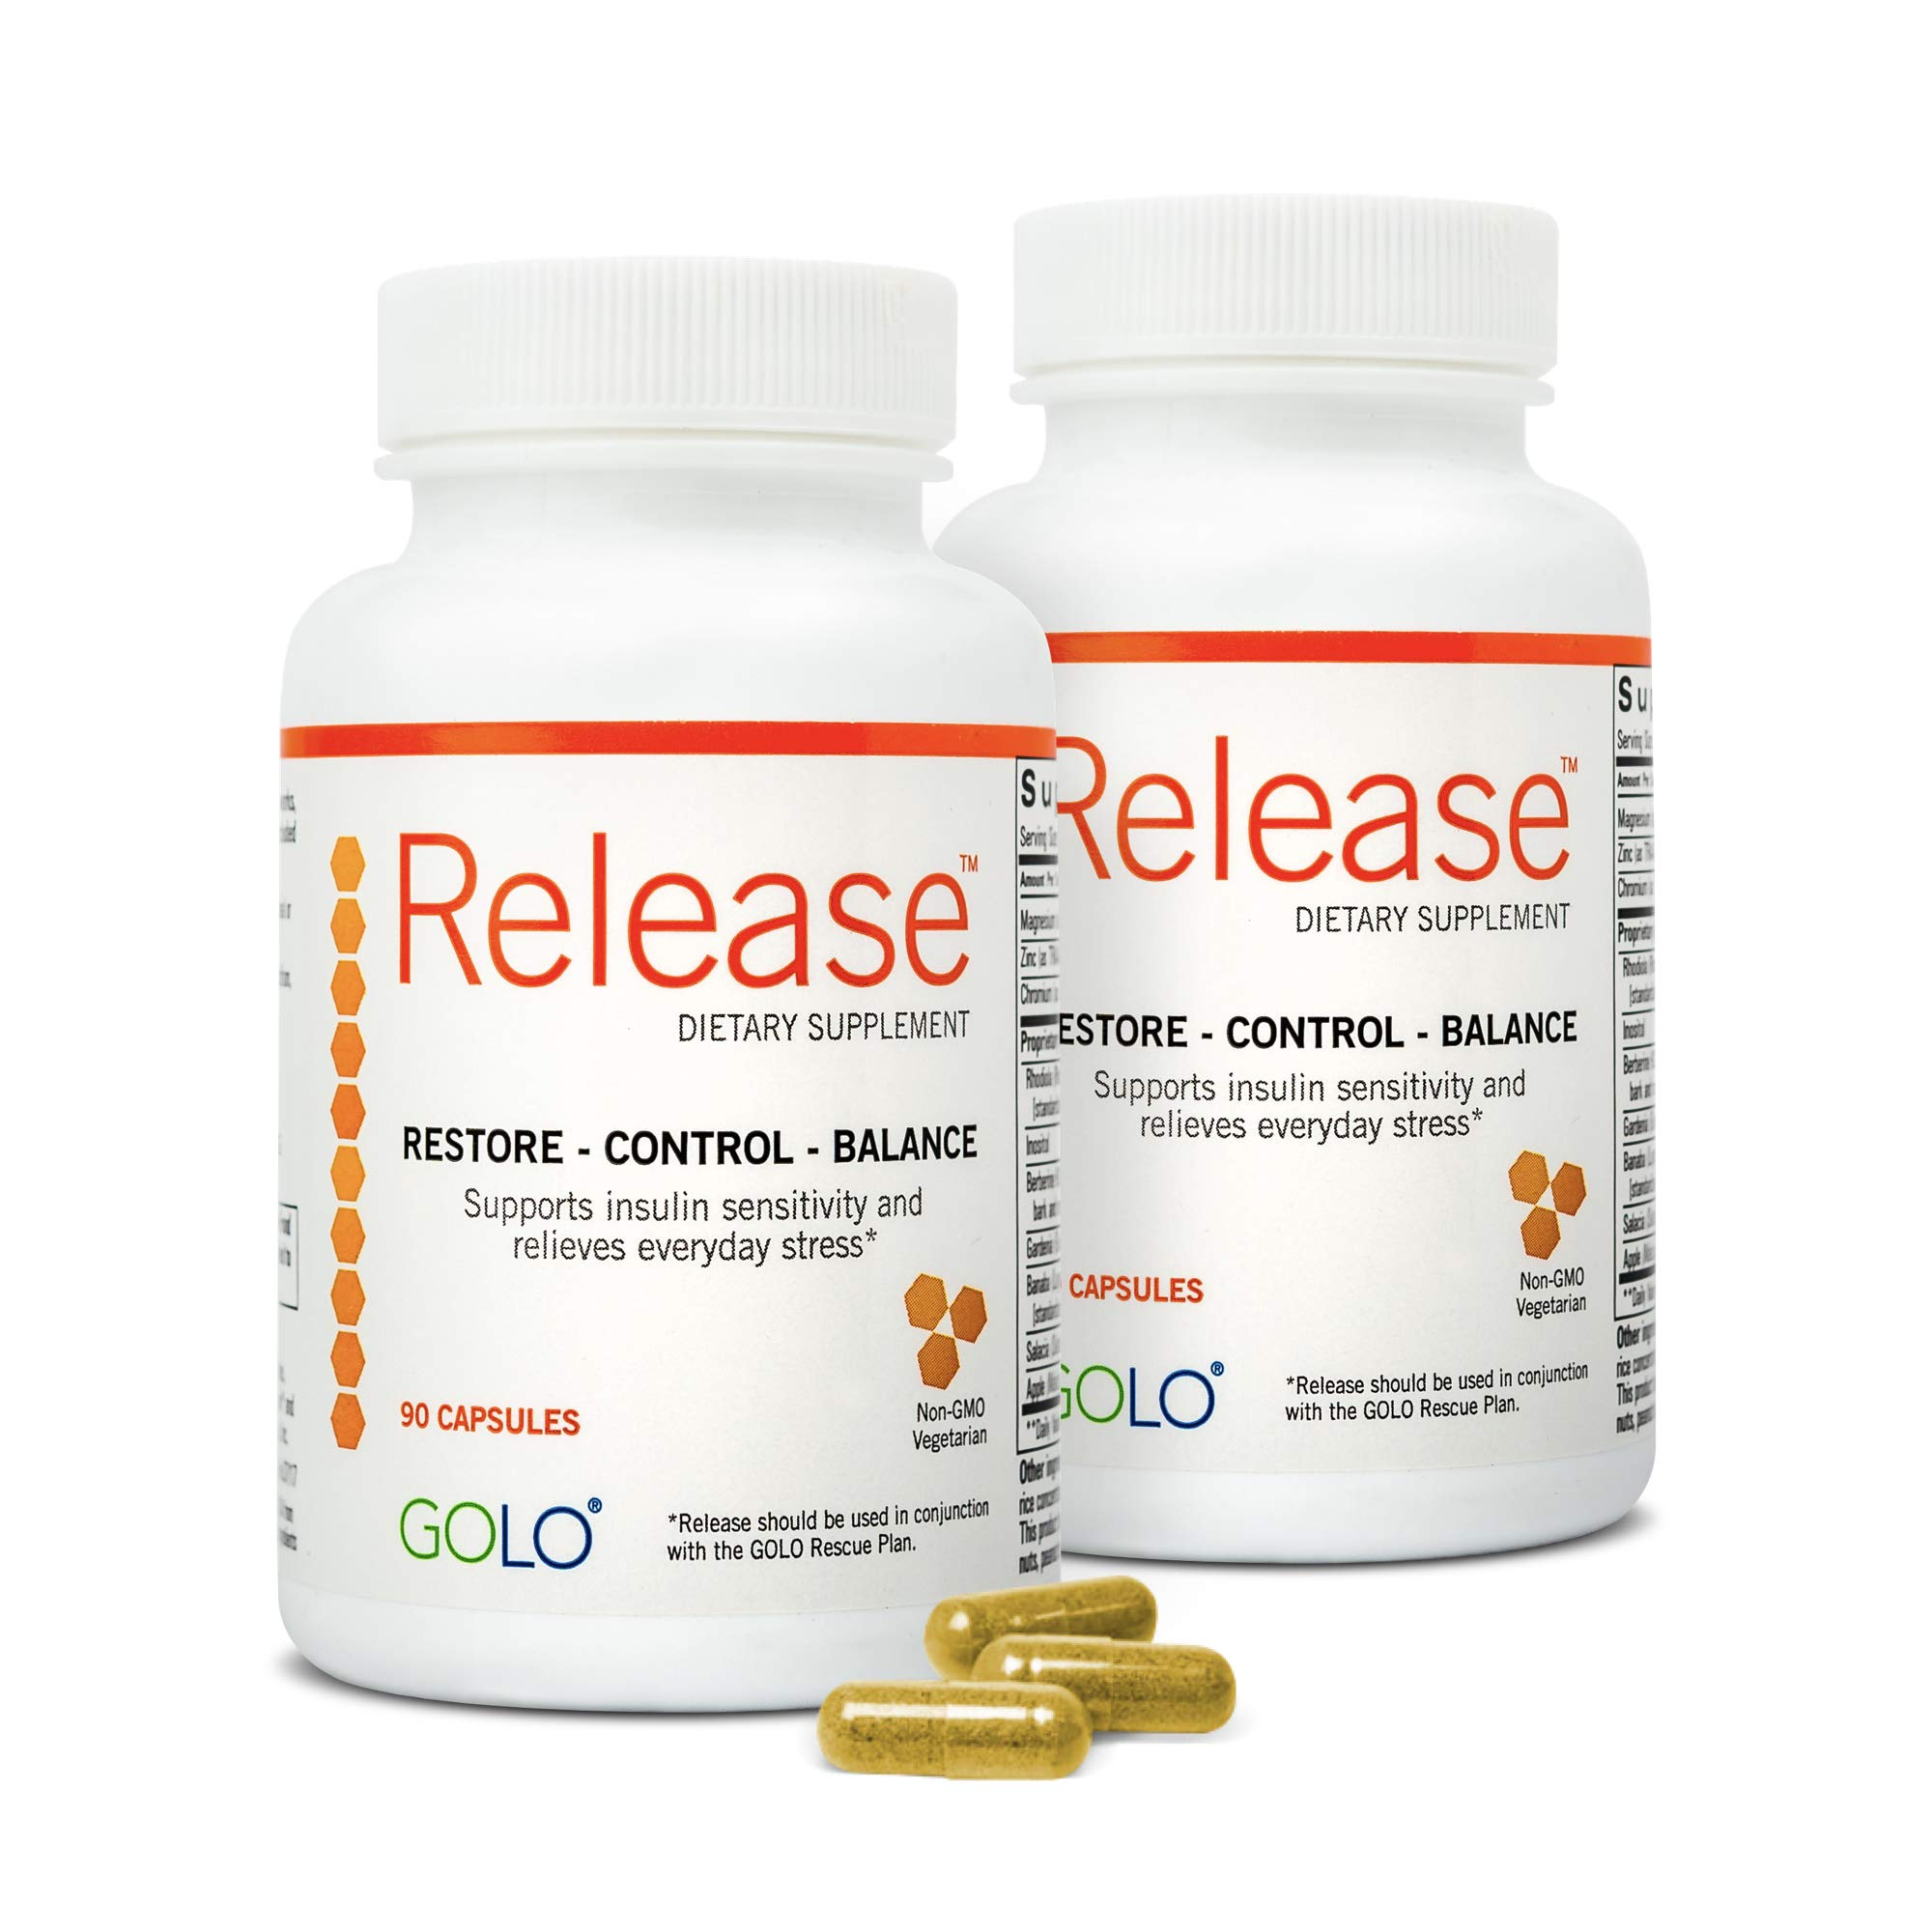 GOLO Release Diet Supplement - Natural Plant-Based Nutraceutical - Balance Hormones, Increase Metabolic Efficiency - No Caffeine, No Stimulants, Vegetarian Safe - 60 Day Supply - 180 Capsules by GOLO